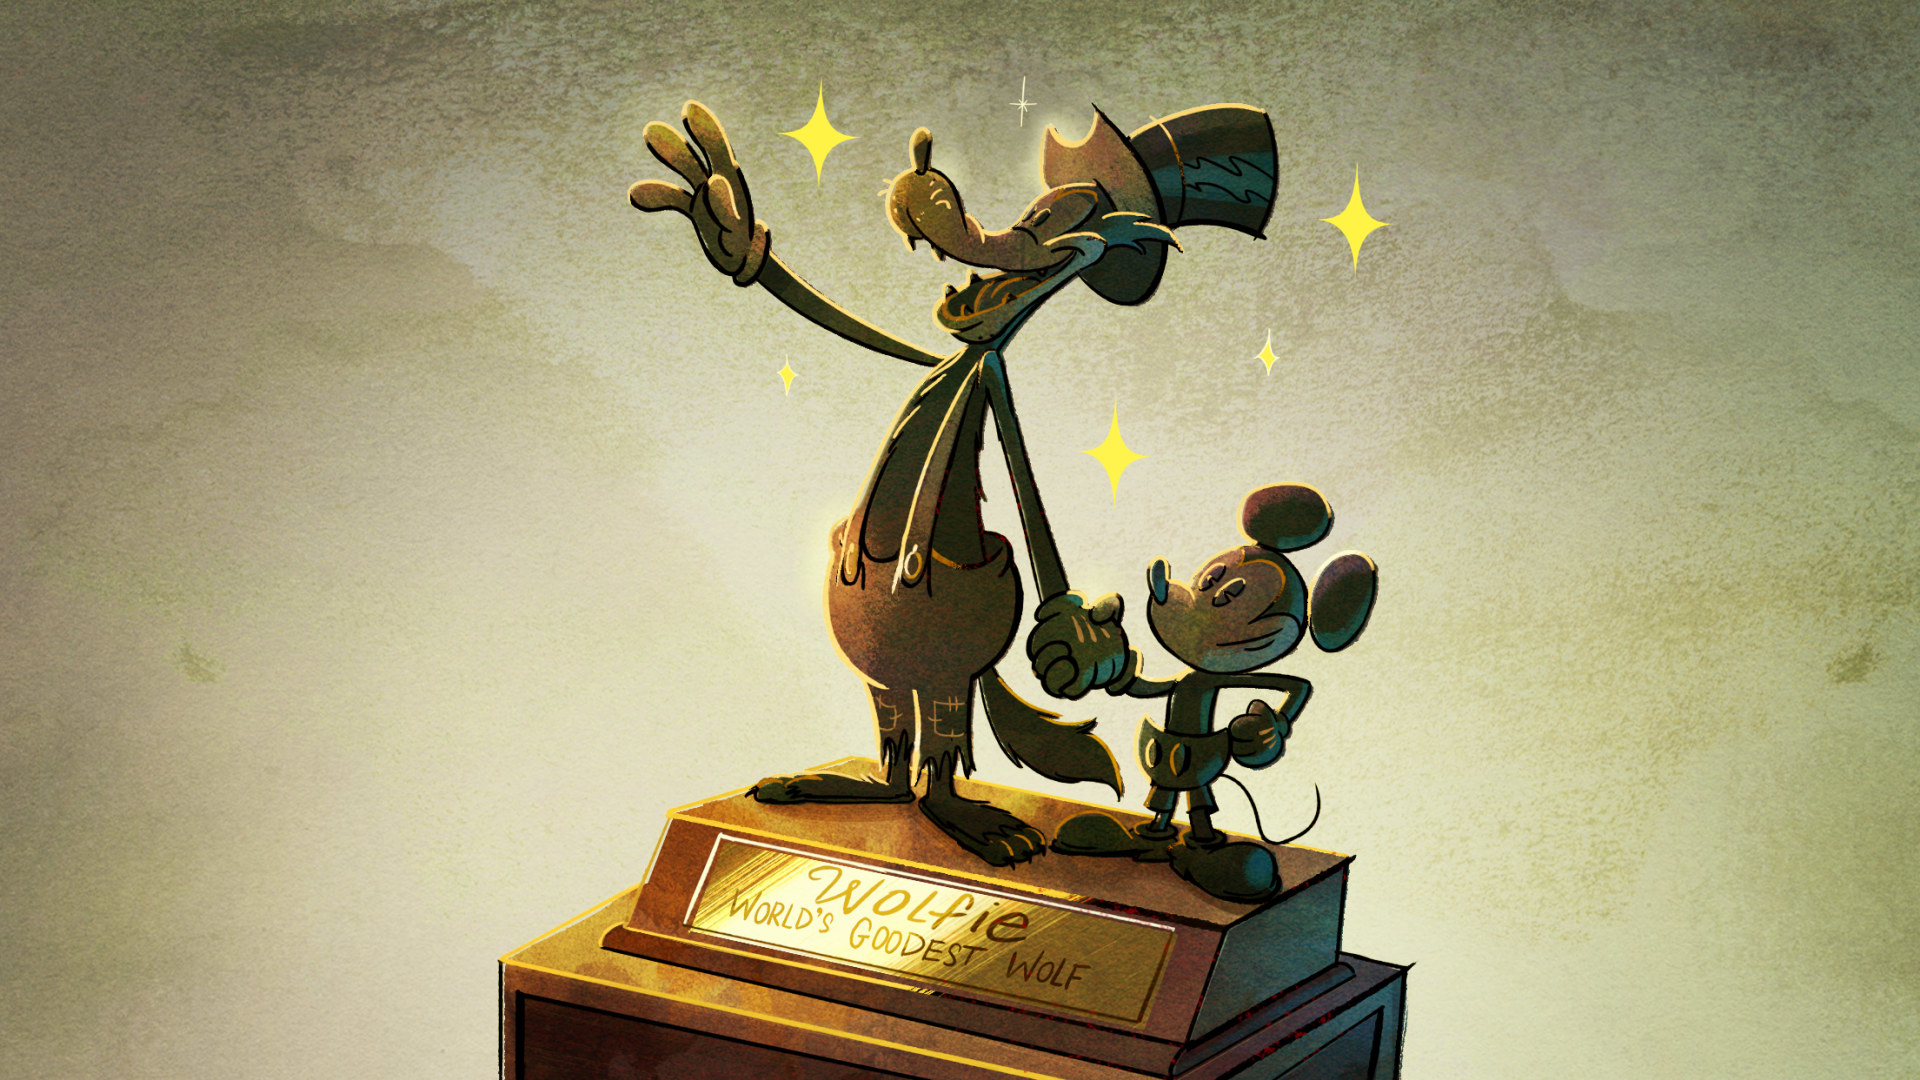 A gold trophy of the Big Bad Wolf and Mickey holding hands